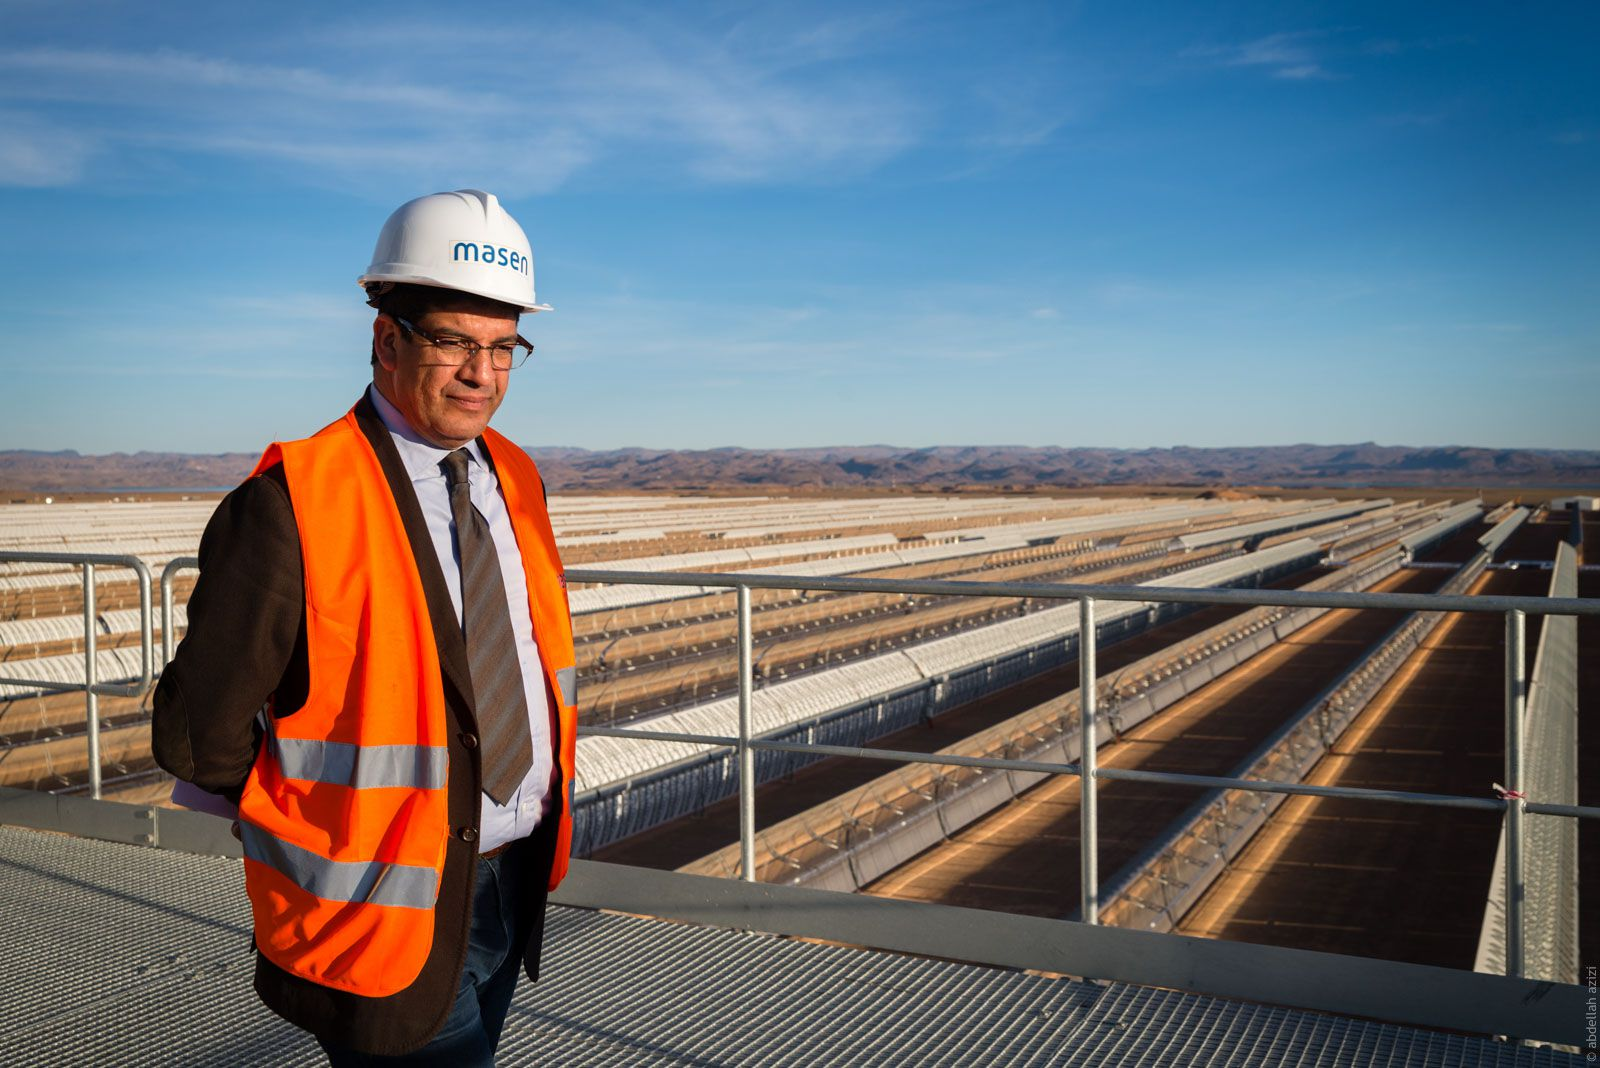 Mr. Mustapha Bakourry de Masen - Ouarzazate Solar Power Station Noor 1